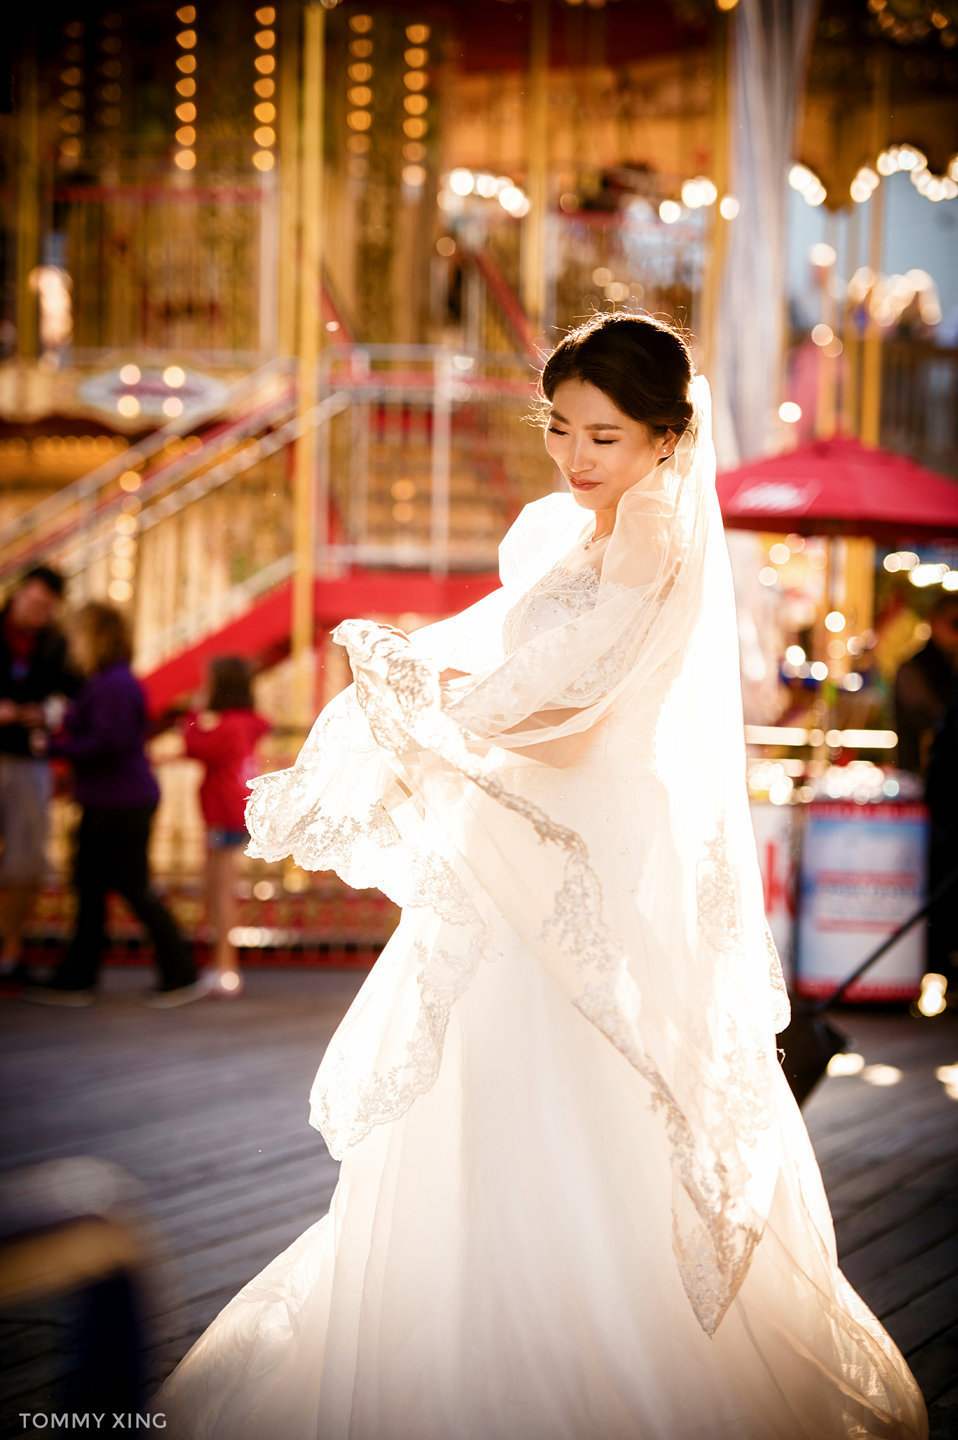 San Francisco Bay Area Chinese Wedding Photographer Tommy Xing 旧金山湾区婚纱照摄影 16.jpg